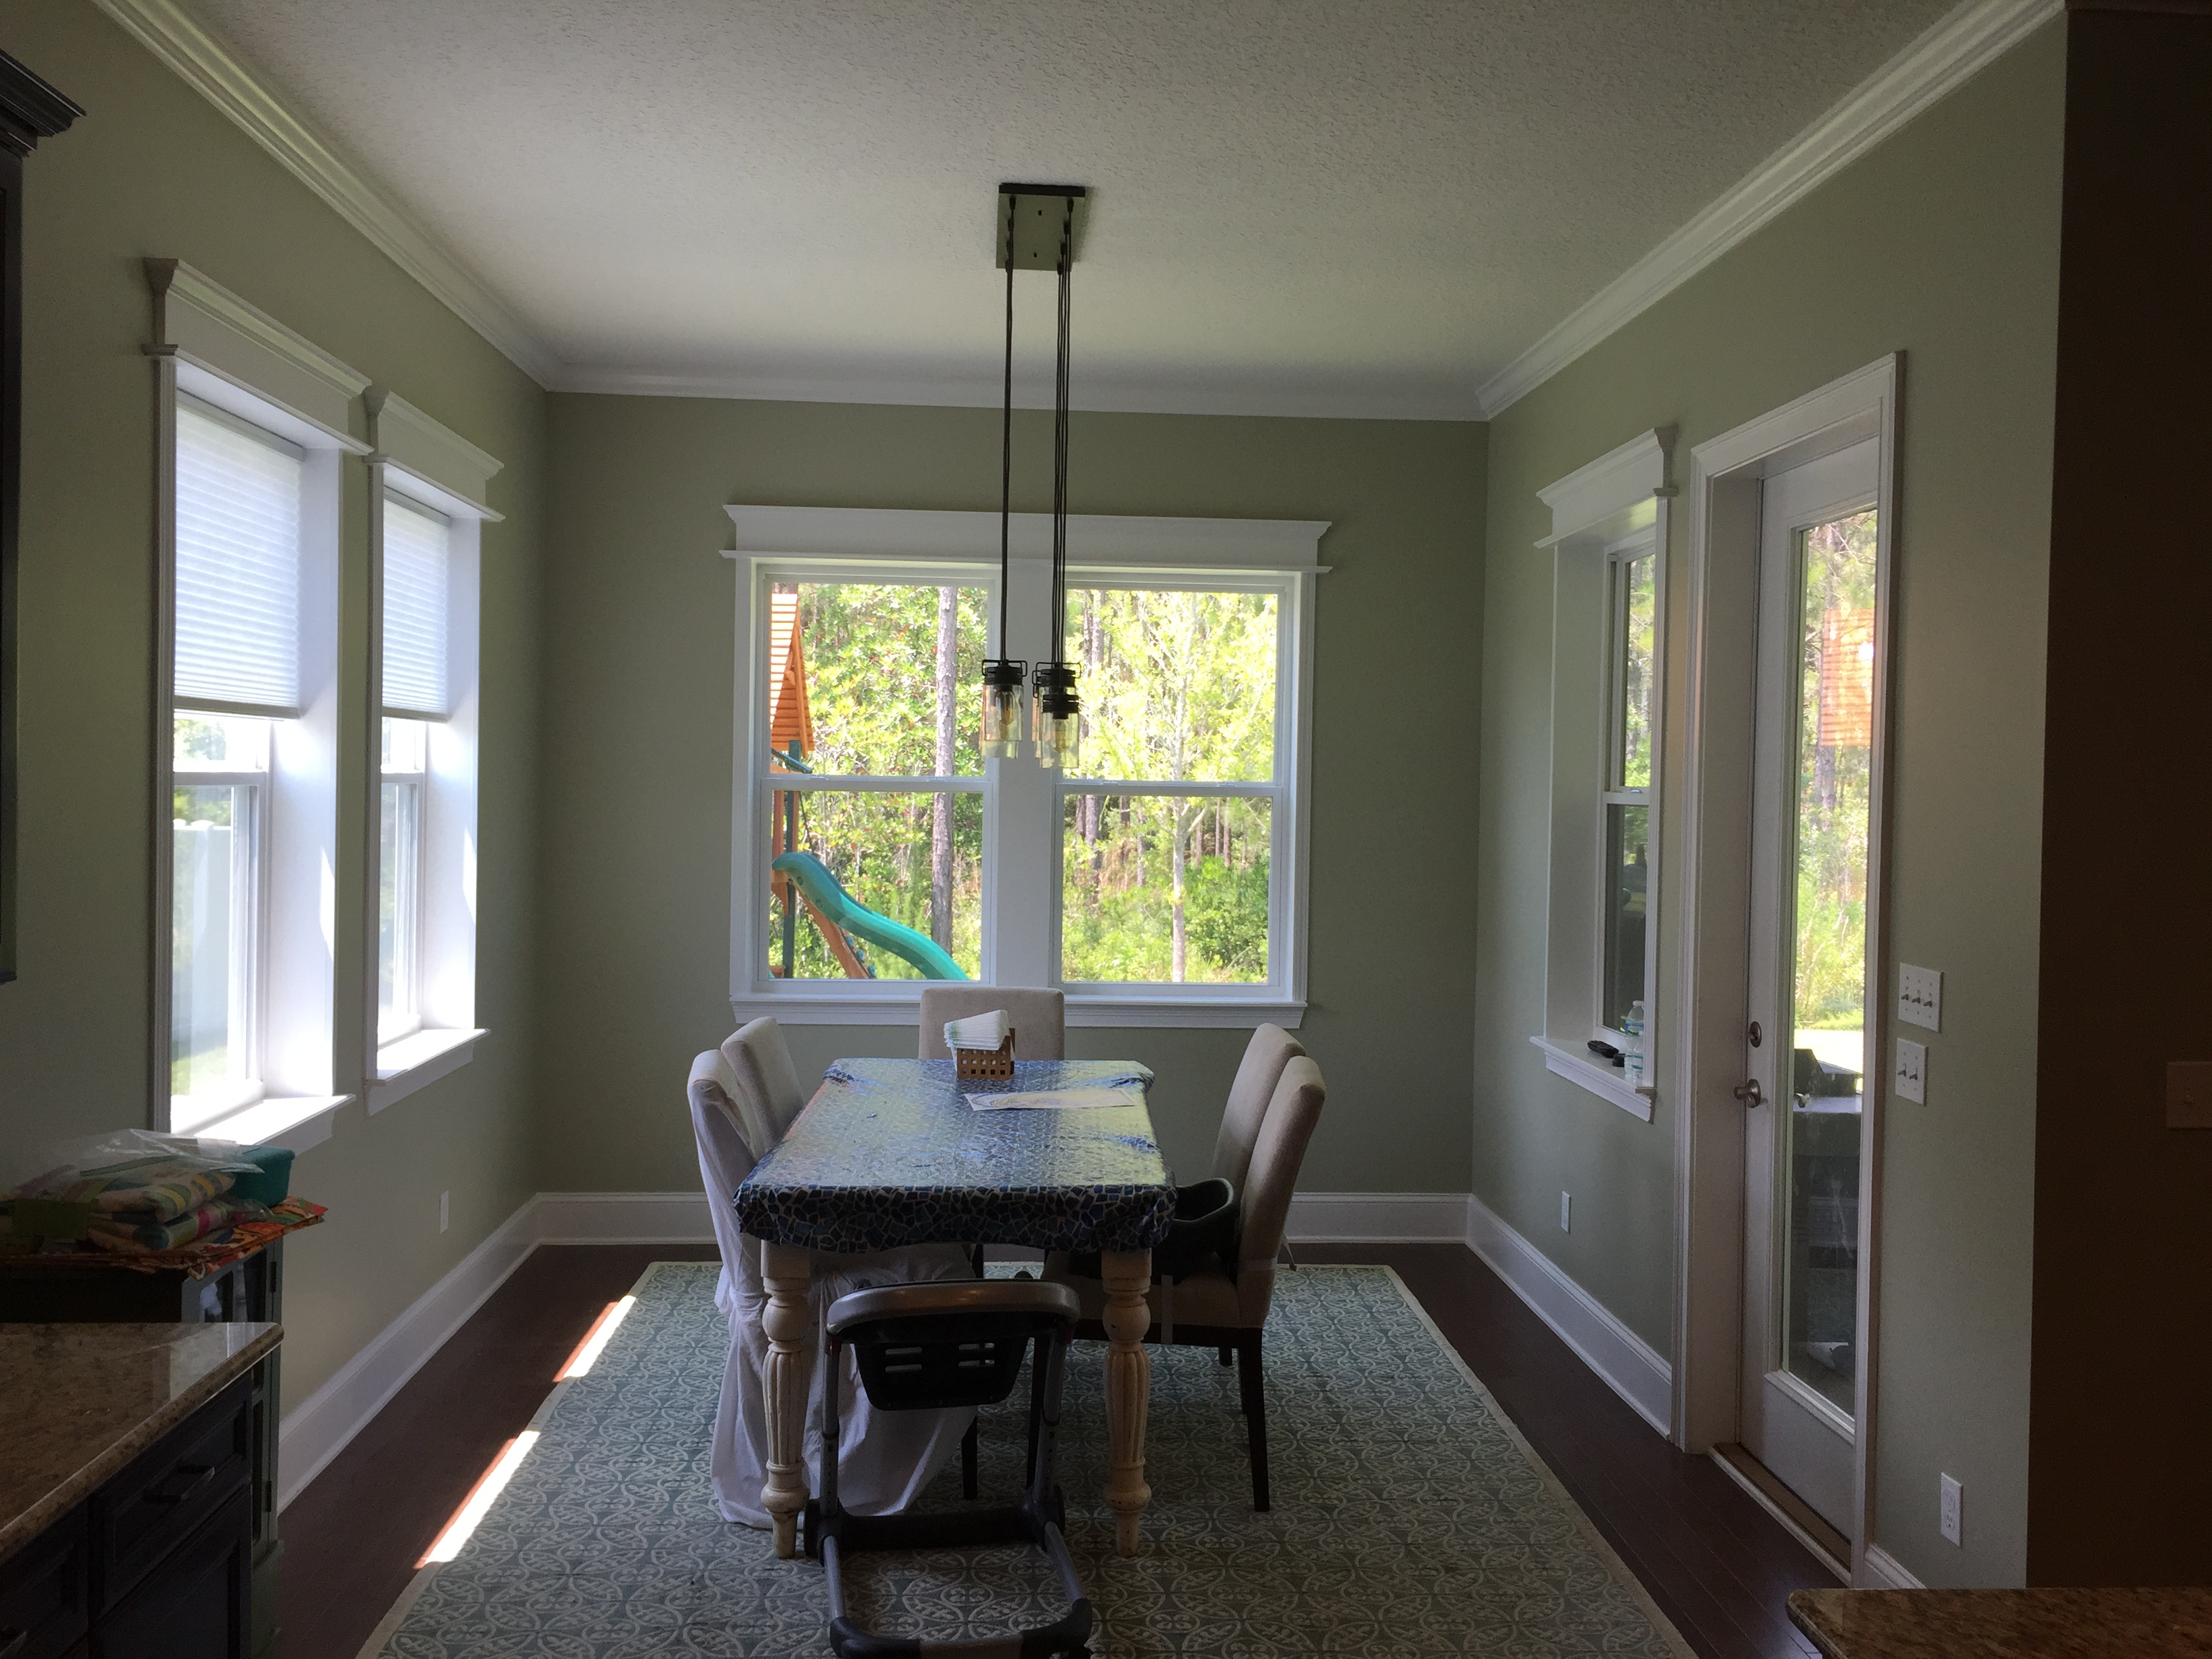 How much should i pay for interior painting complete interior paint job from warline painting - Average cost to paint exterior house trim decor ...